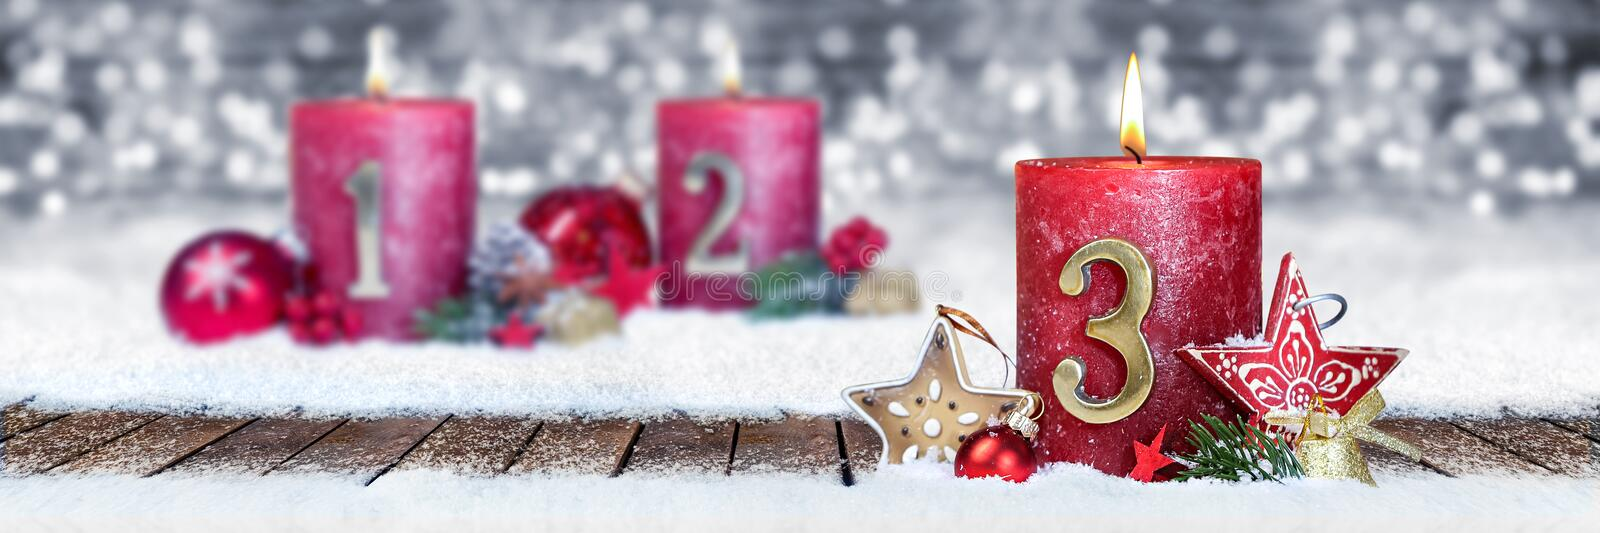 third sunday of advent red candle with golden metal number one on wooden planks in snow front of silver bokeh background stock photo